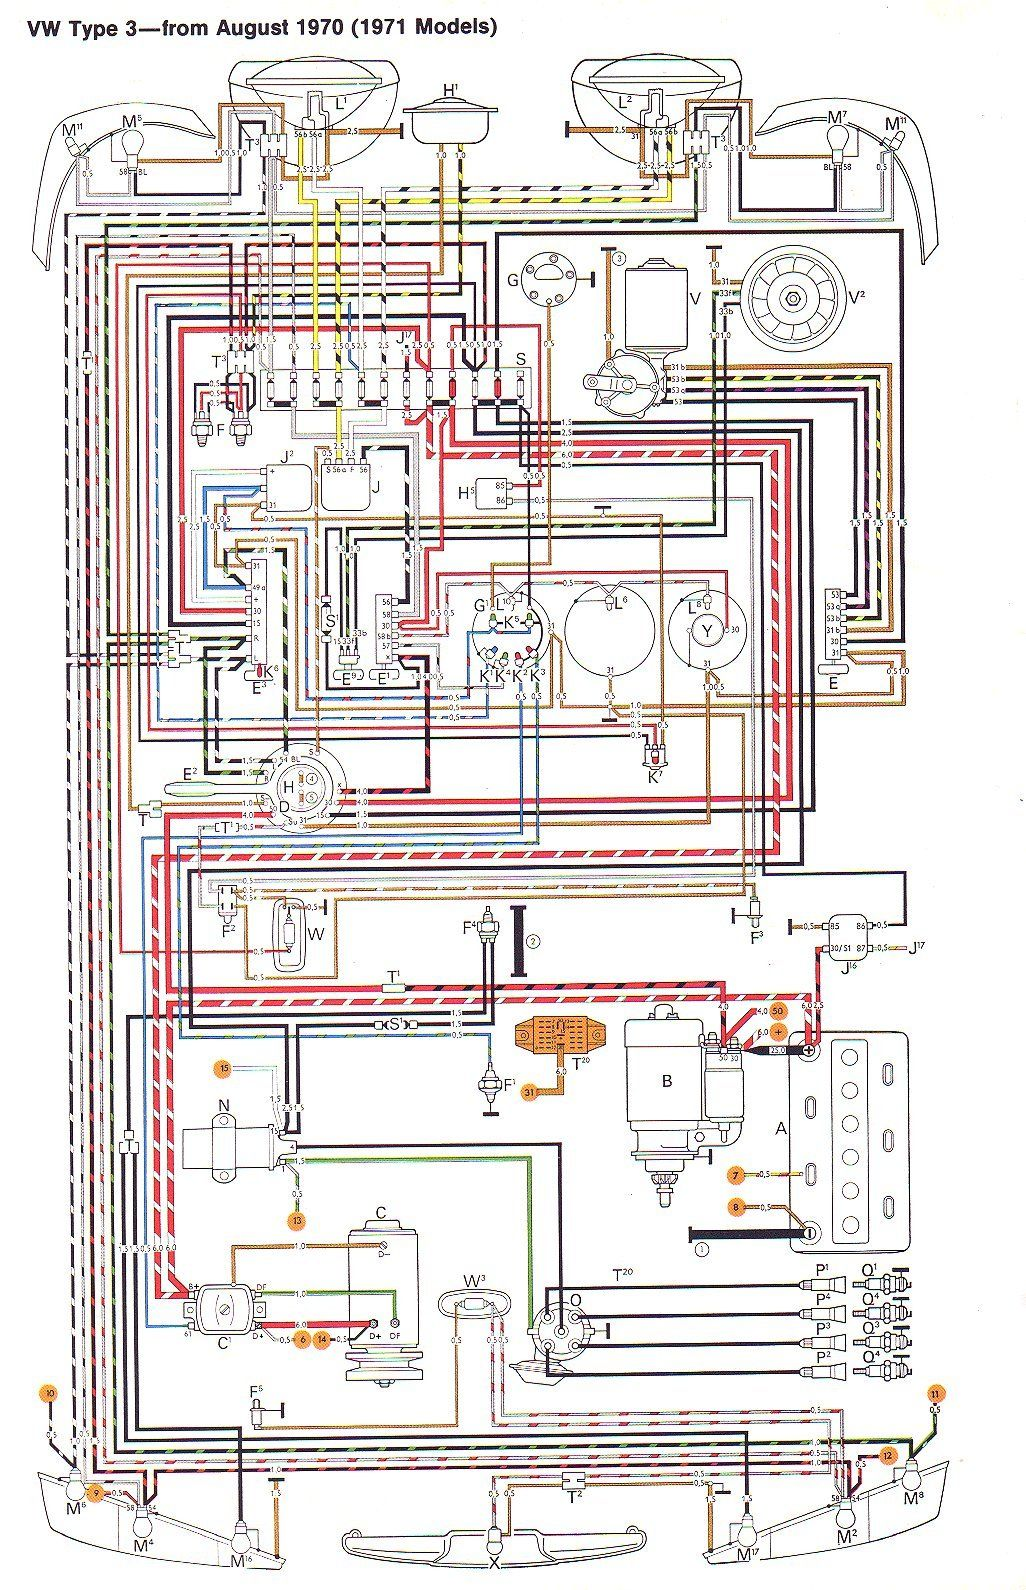 Groovy 71 Beetle Wiring Diagram Free Picture Schematic Wiring Diagram Data Wiring Digital Resources Sapredefiancerspsorg